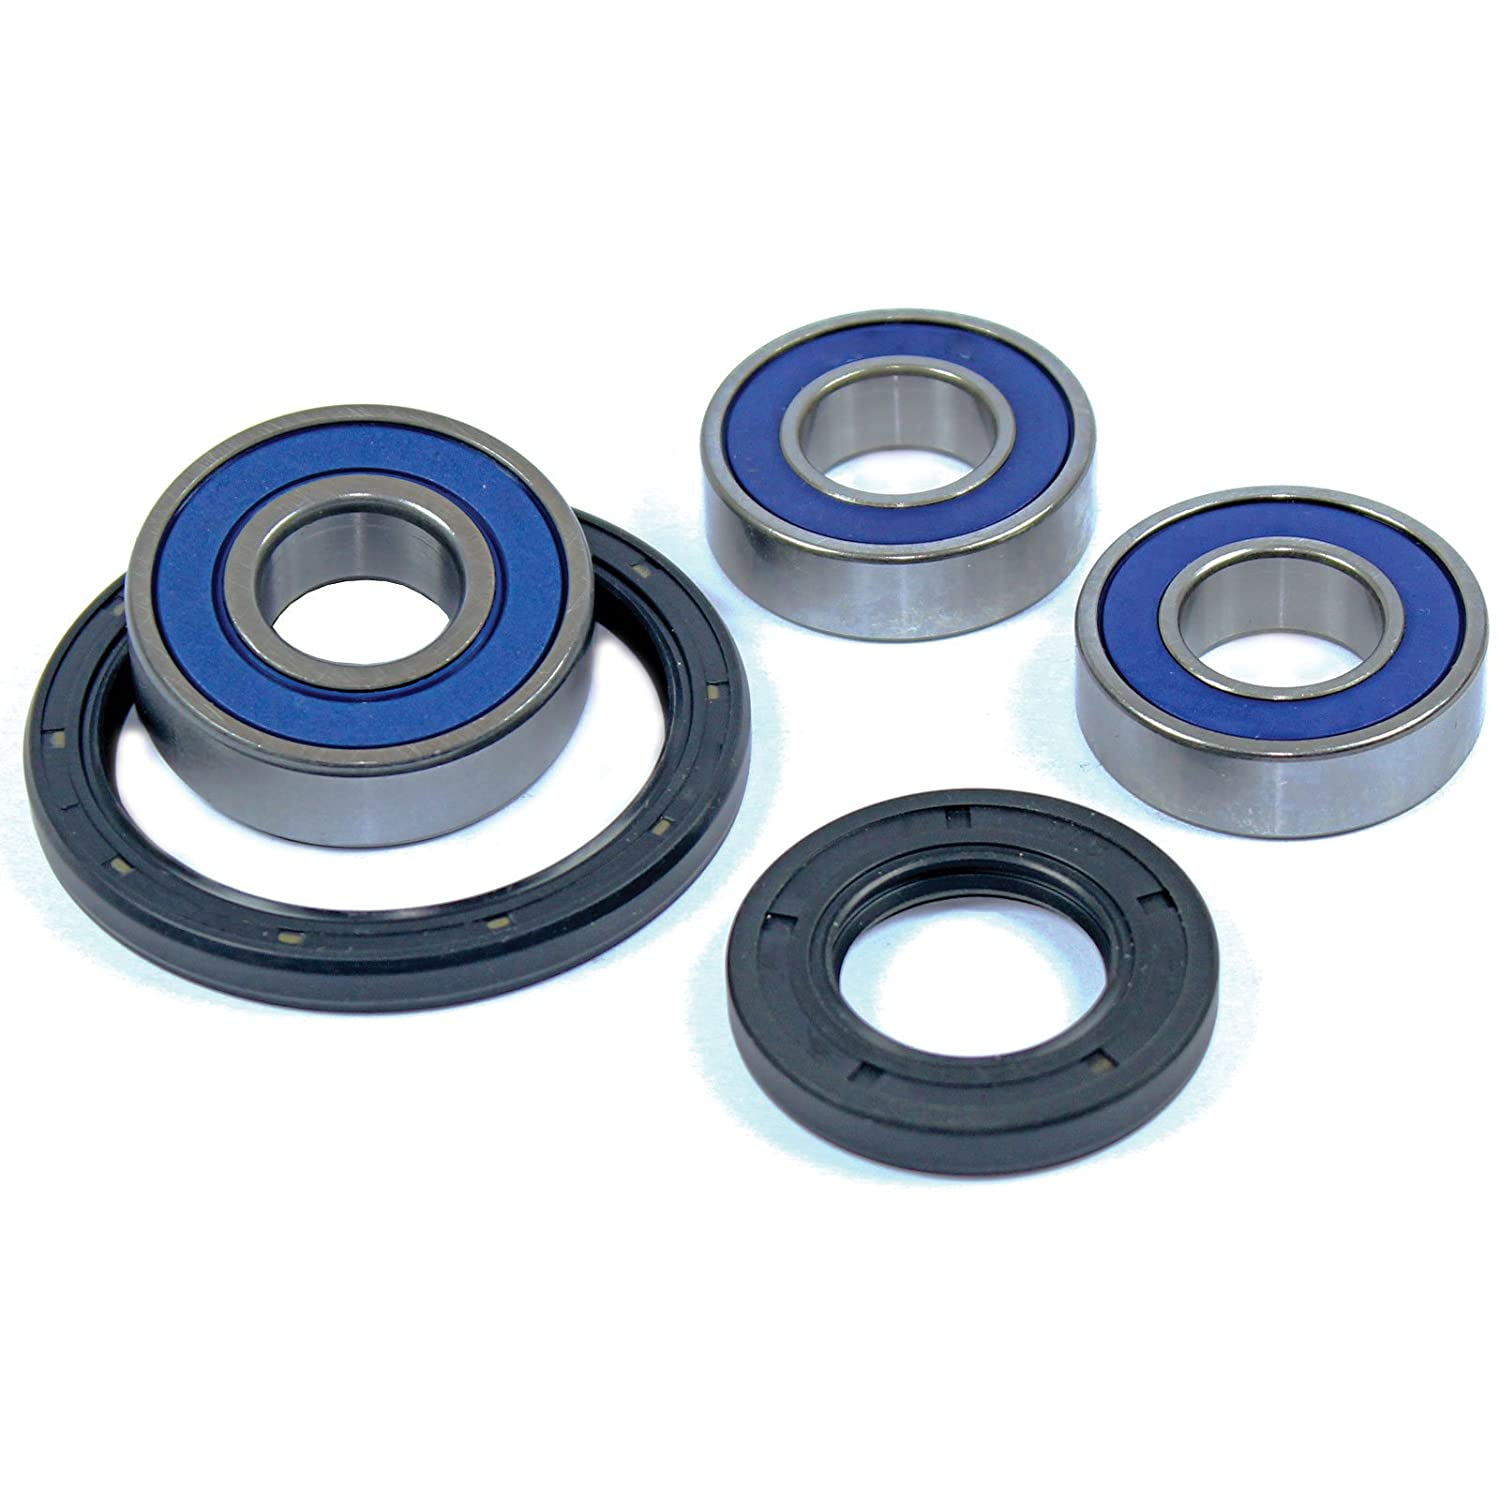 Rear Wheel Ball Bearings Seals Kit Fits YAMAHA MOTO-4 225 YFM225S 1986-1988